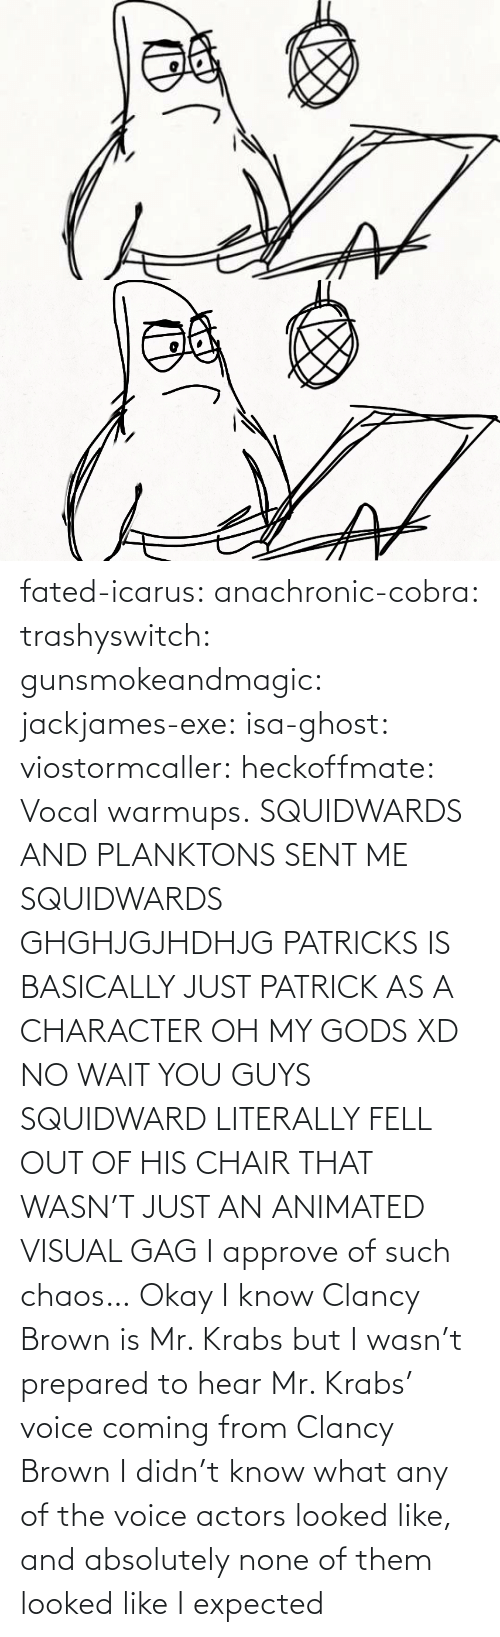 Basically: fated-icarus:  anachronic-cobra: trashyswitch:  gunsmokeandmagic:  jackjames-exe:  isa-ghost:   viostormcaller:  heckoffmate: Vocal warmups. SQUIDWARDS AND PLANKTONS SENT ME  SQUIDWARDS GHGHJGJHDHJG   PATRICKS IS BASICALLY JUST PATRICK AS A CHARACTER OH MY GODS XD   NO WAIT YOU GUYS SQUIDWARD LITERALLY FELL OUT OF HIS CHAIR THAT WASN'T JUST AN ANIMATED VISUAL GAG    I approve of such chaos…    Okay I know Clancy Brown is Mr. Krabs but I wasn't prepared to hear Mr. Krabs' voice coming from Clancy Brown    I didn't know what any of the voice actors looked like, and absolutely none of them looked like I expected